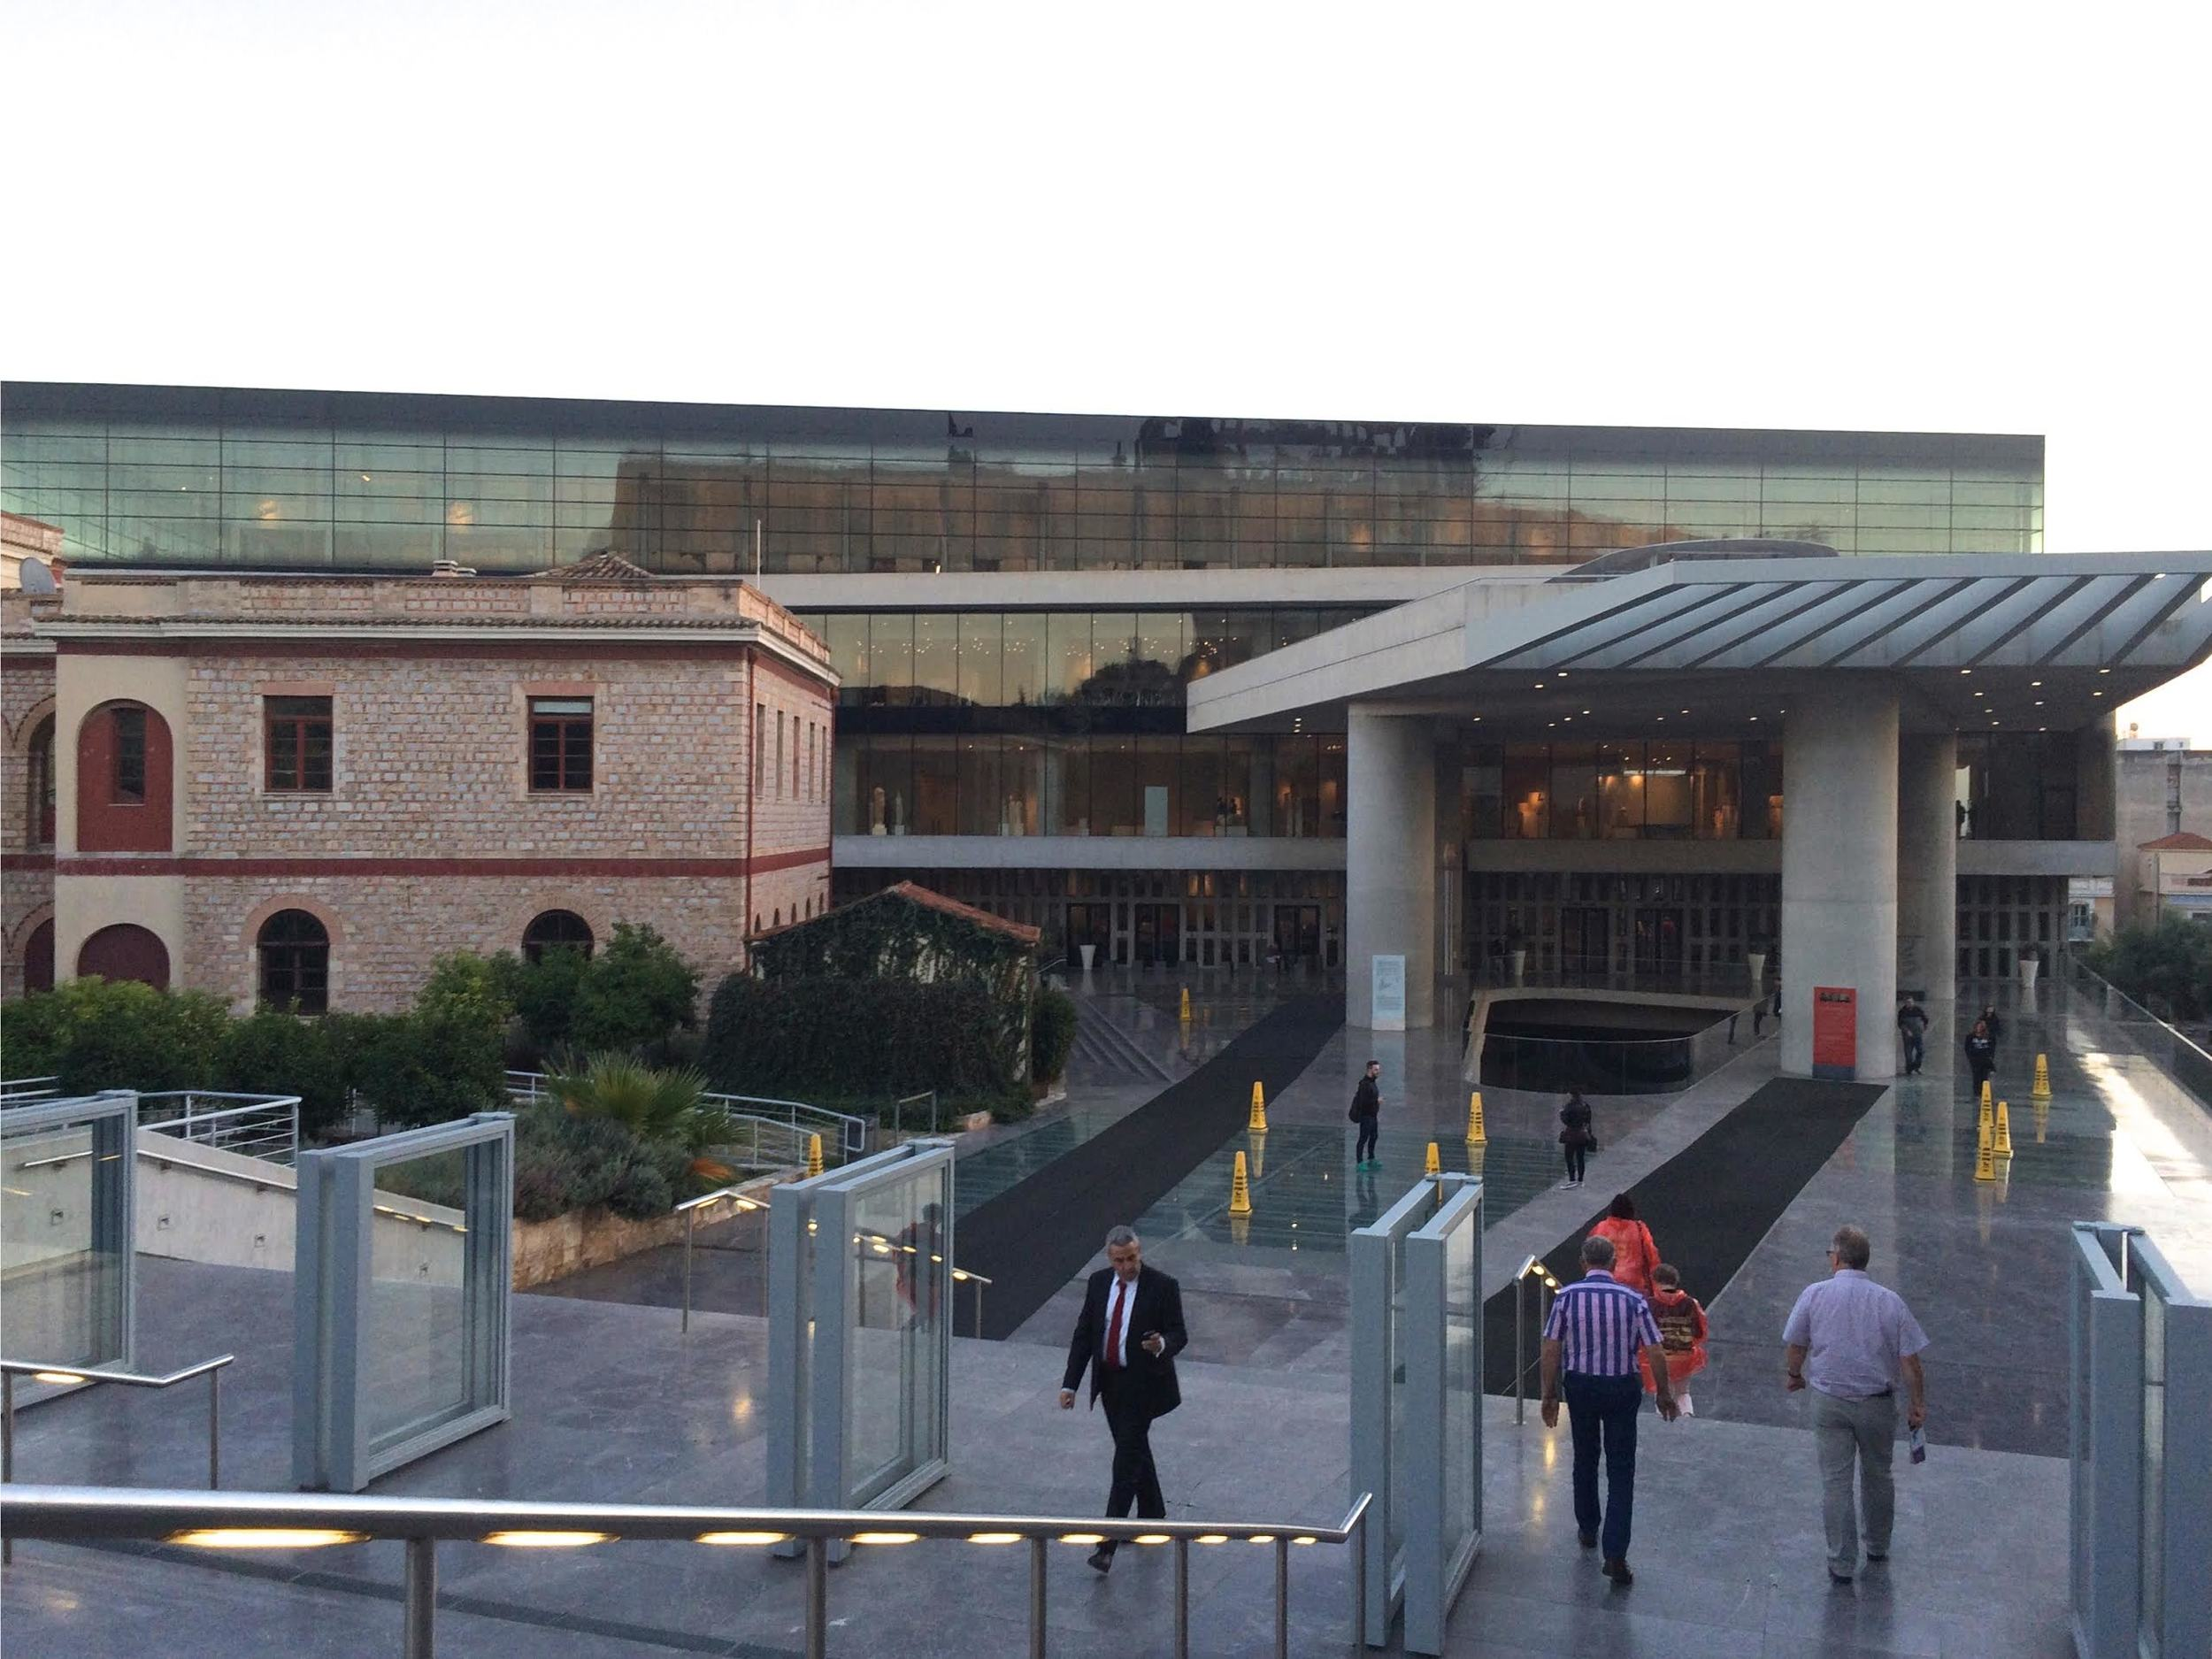 The New Acropolis Museum; a must do Athen's sightseeing stop